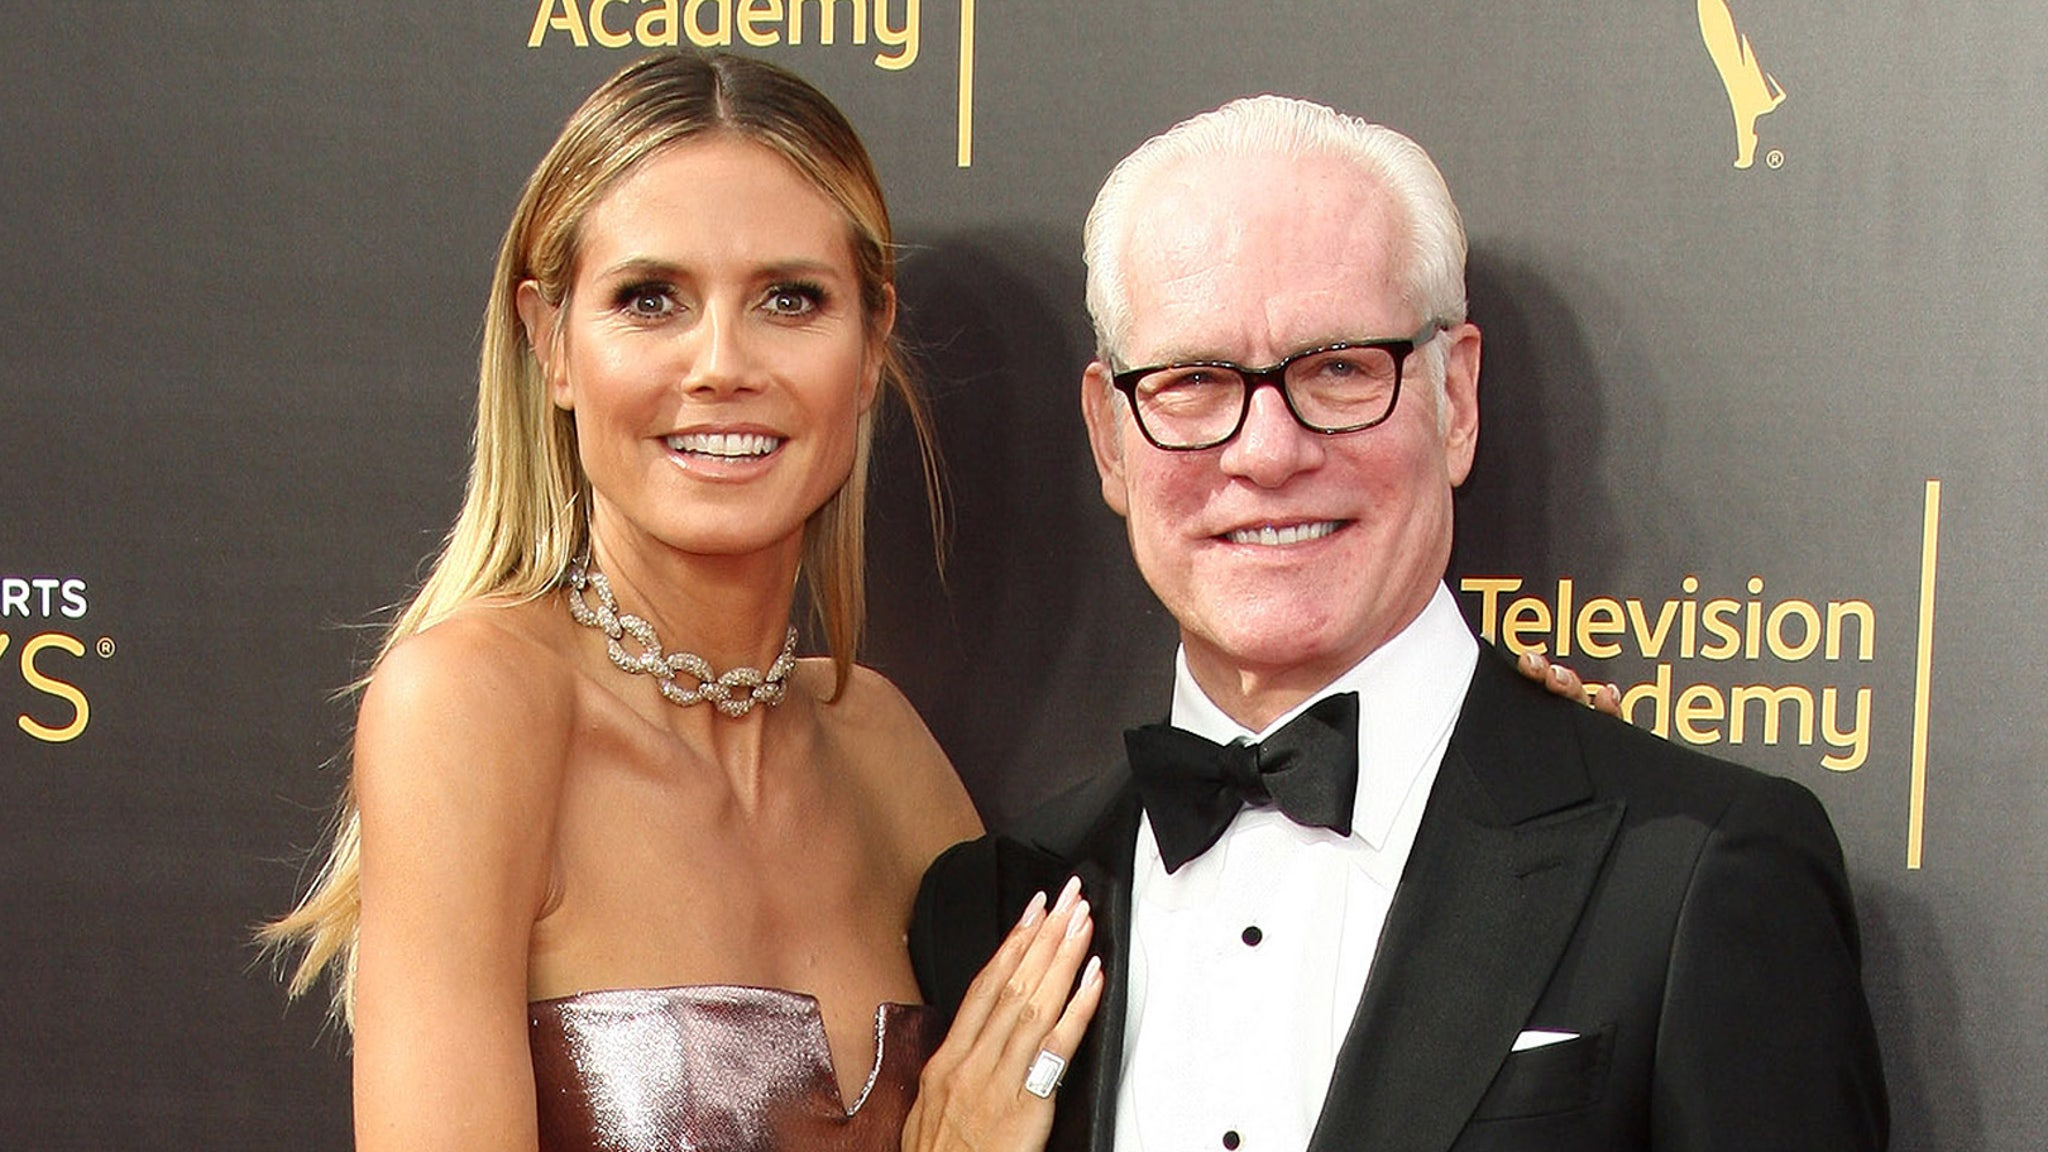 Tim Gunn called supermodel who once told Heidi Klum to leave Project Runway 'nervous and jealous'